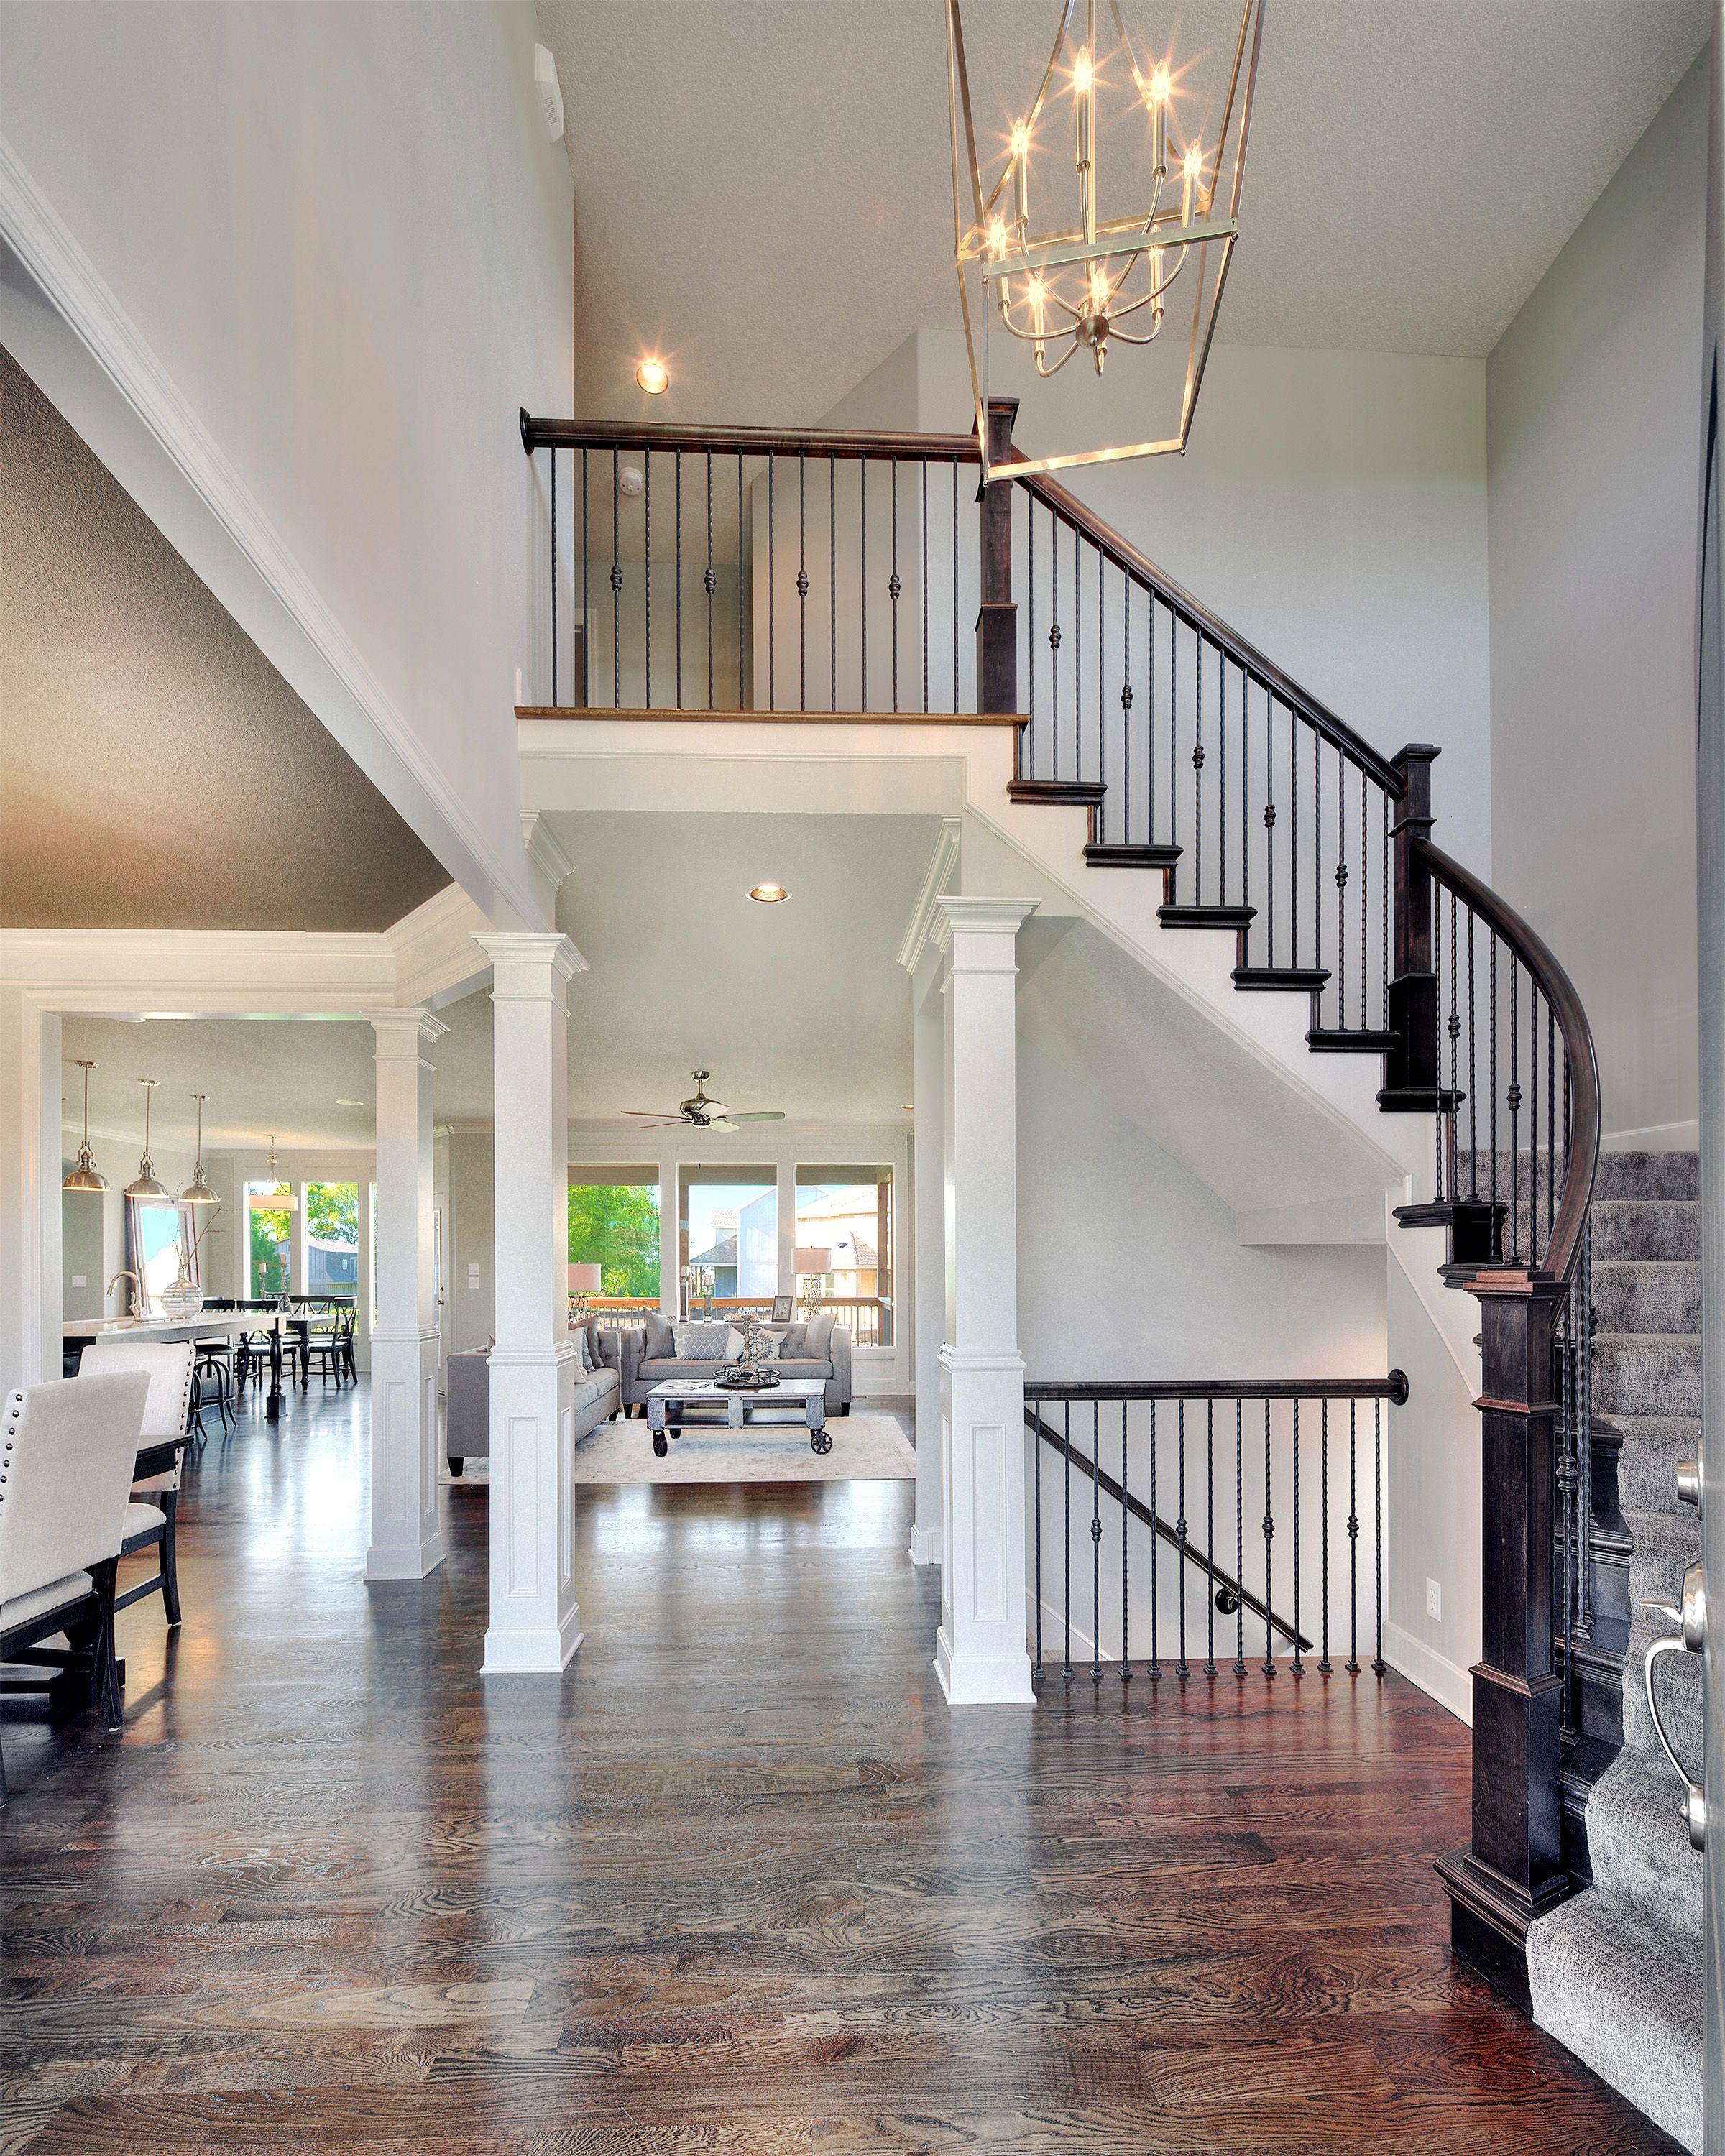 Interior Home Decoration Indoor Stairs Design Pictures: Pin By Bickimer Homes On Model Homes